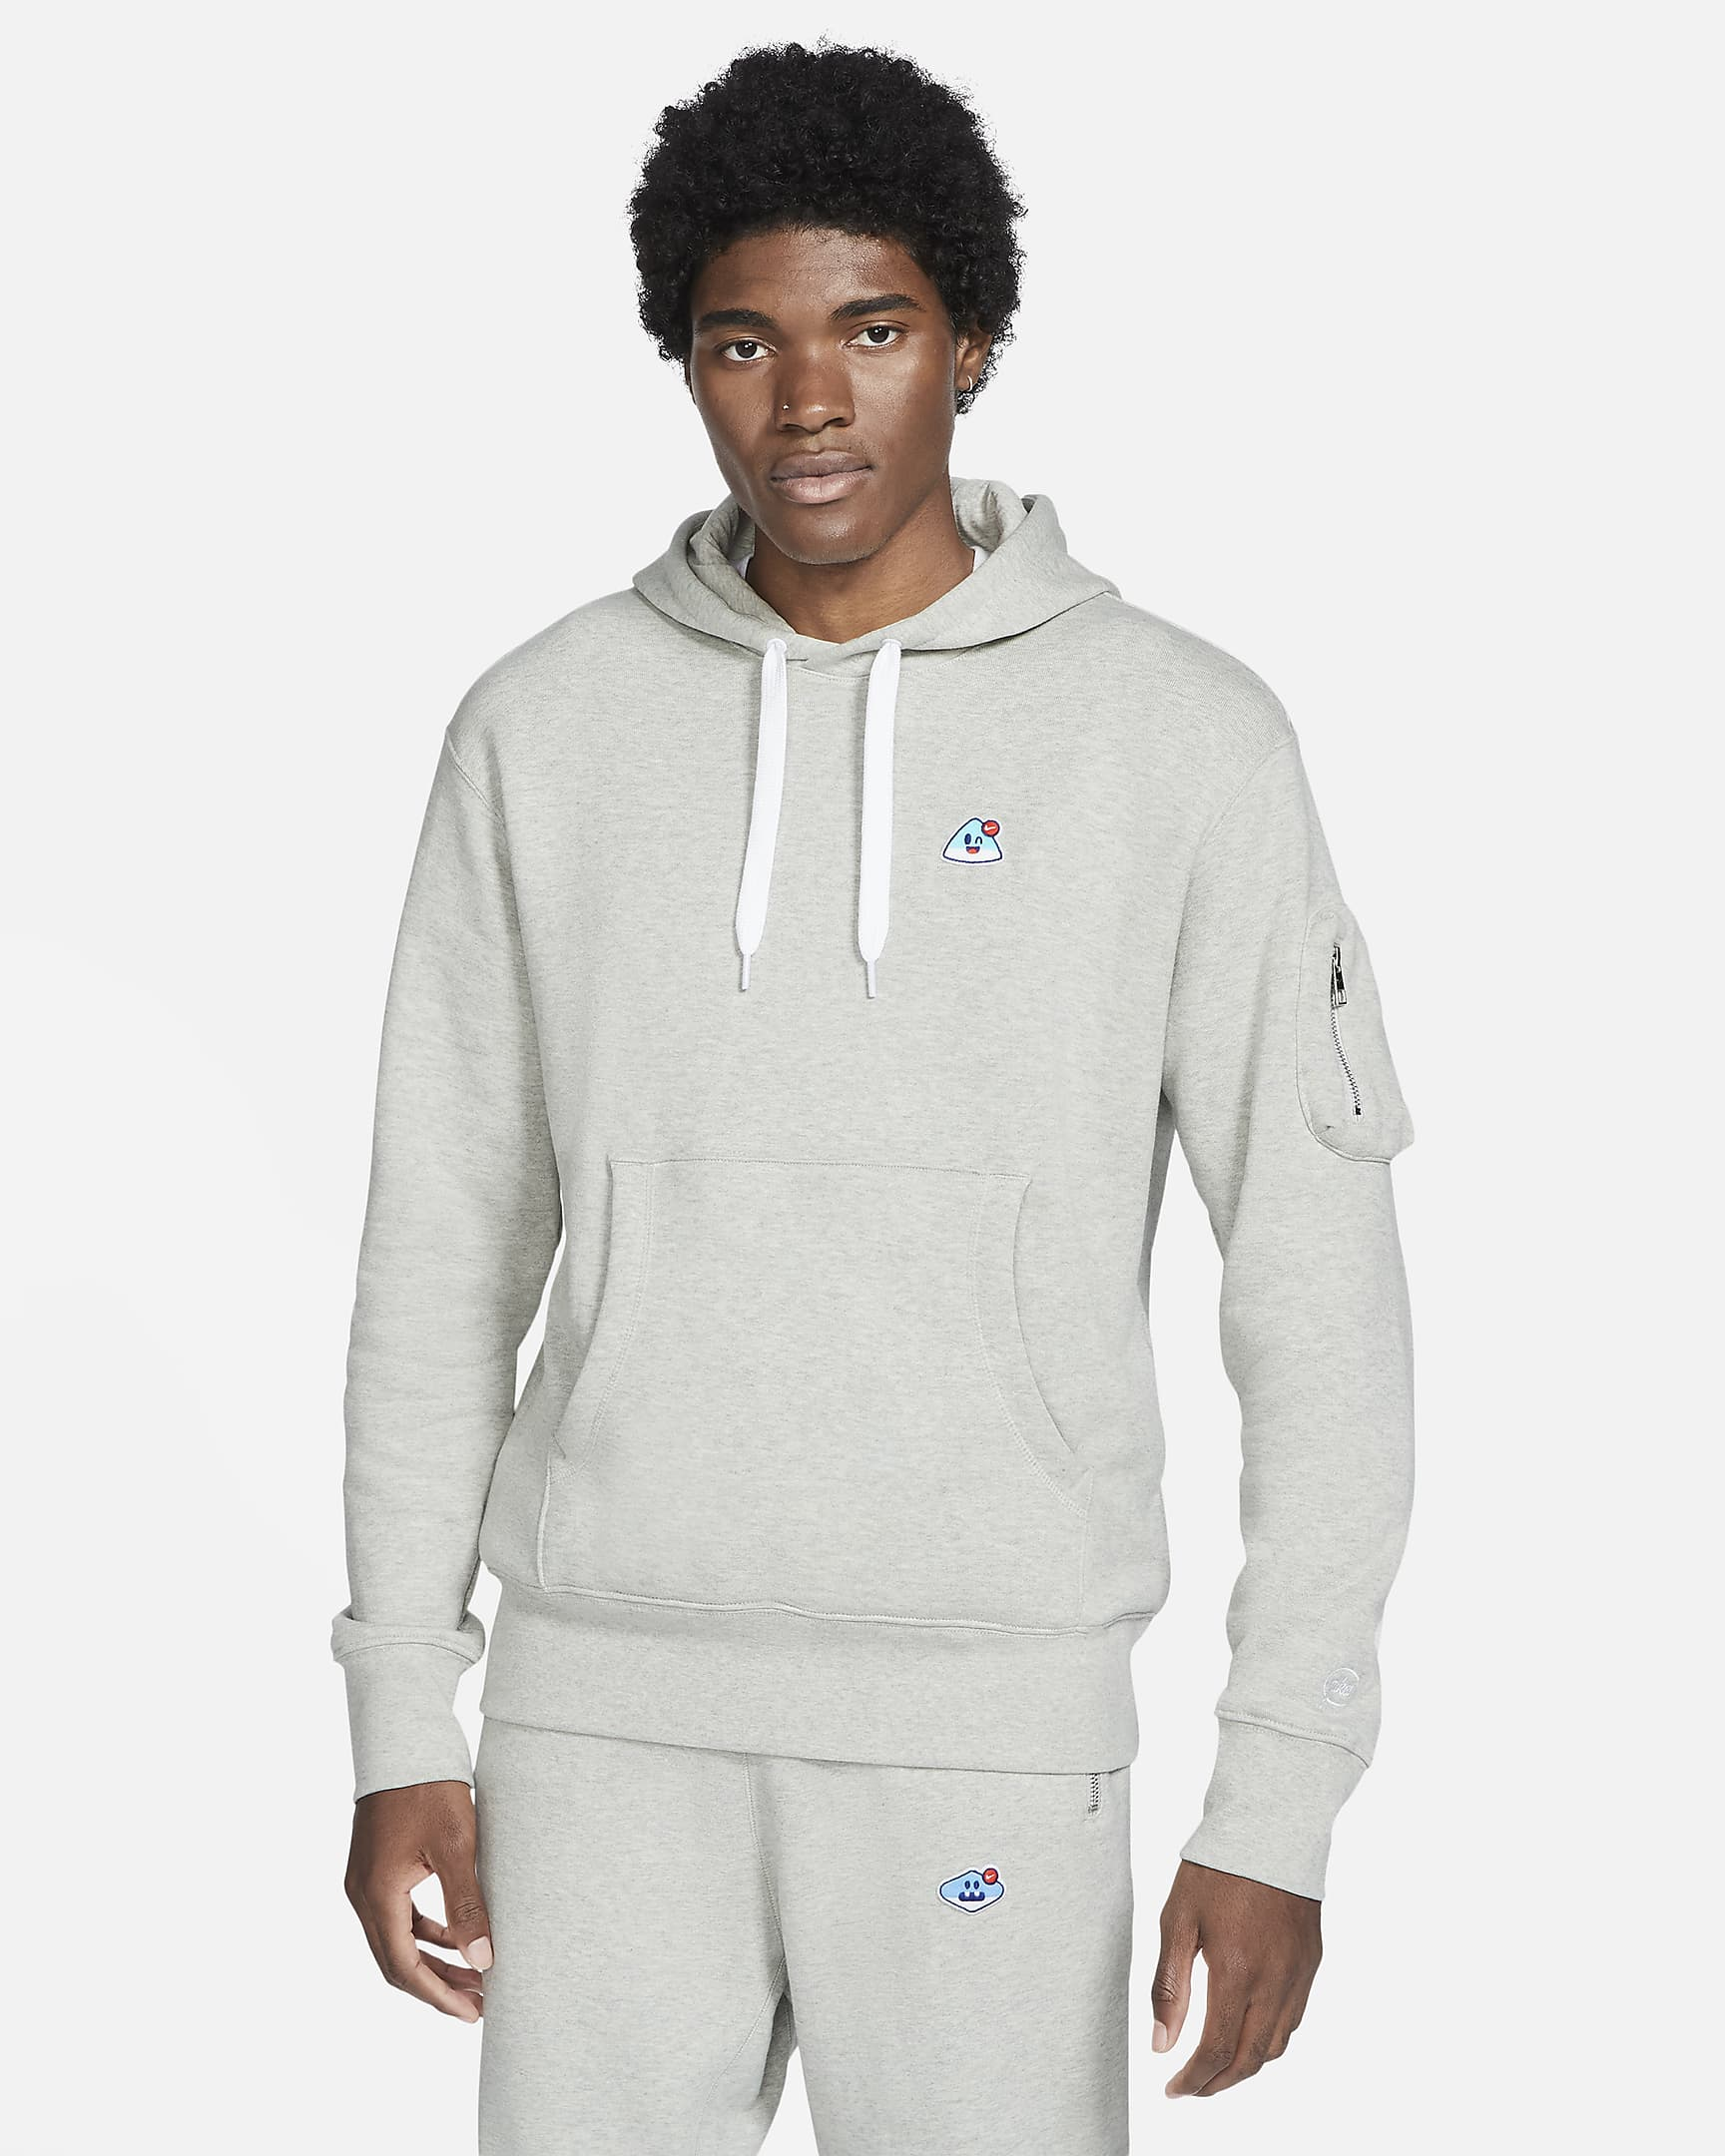 sportswear-mens-french-terry-pullover-hoodie-SL47Jk copy